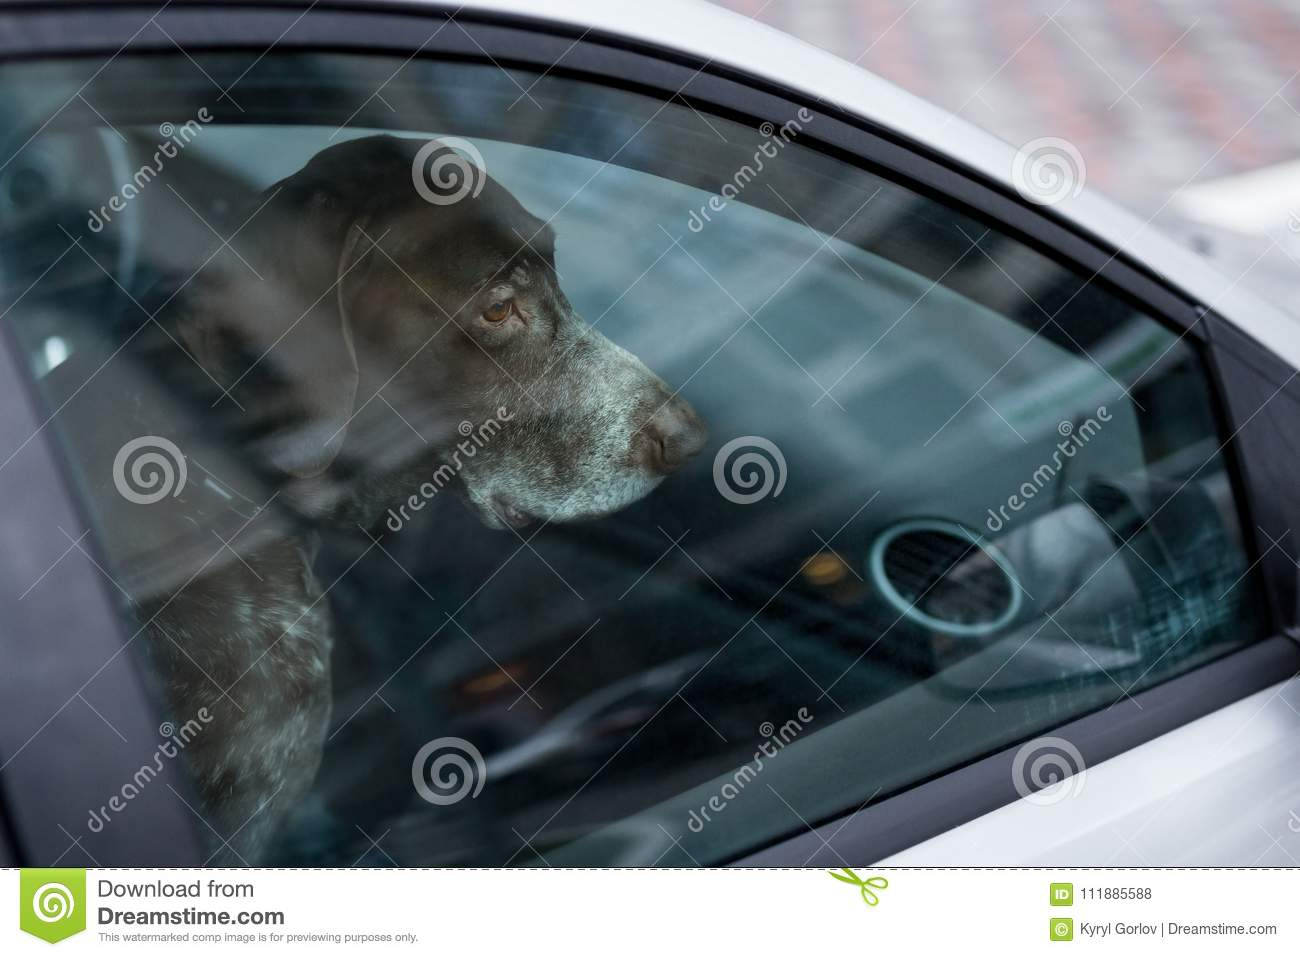 Dog left alone in locked car. Abandoned animal in closed space. Danger of pet overheating or hypothermia. Owner`s negligence and